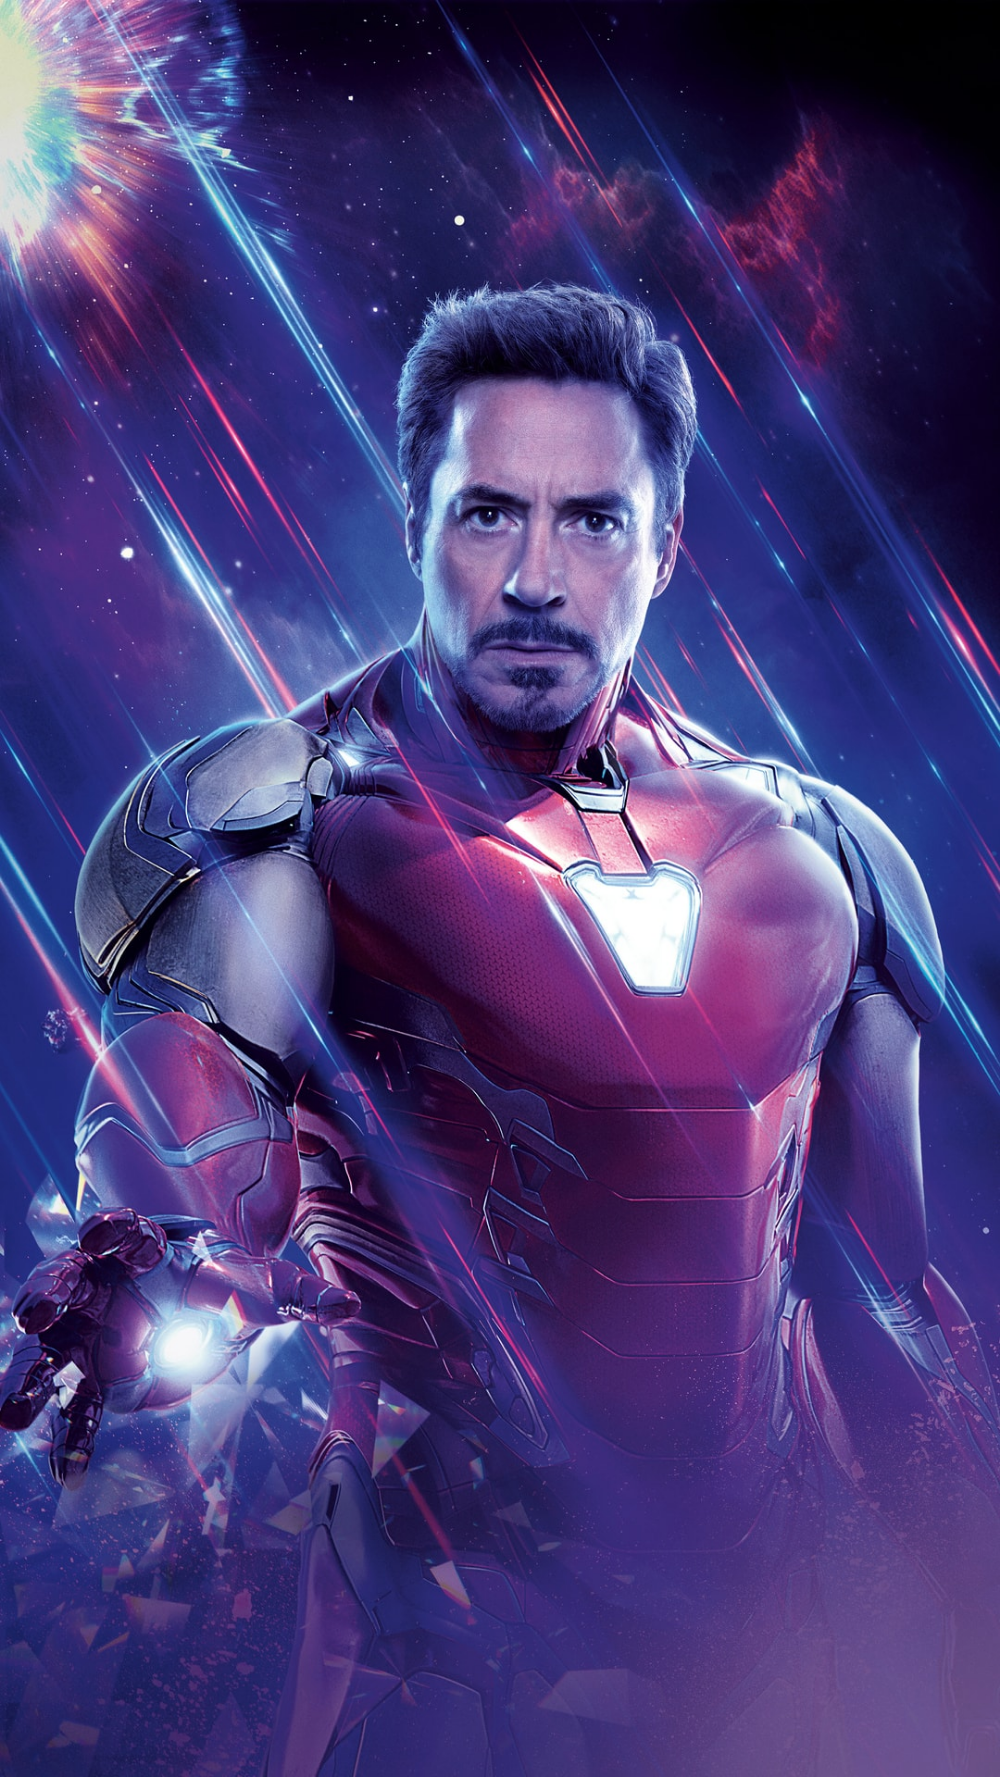 Iron man Avengers Endgame   4K wallpapers, free and easy to download